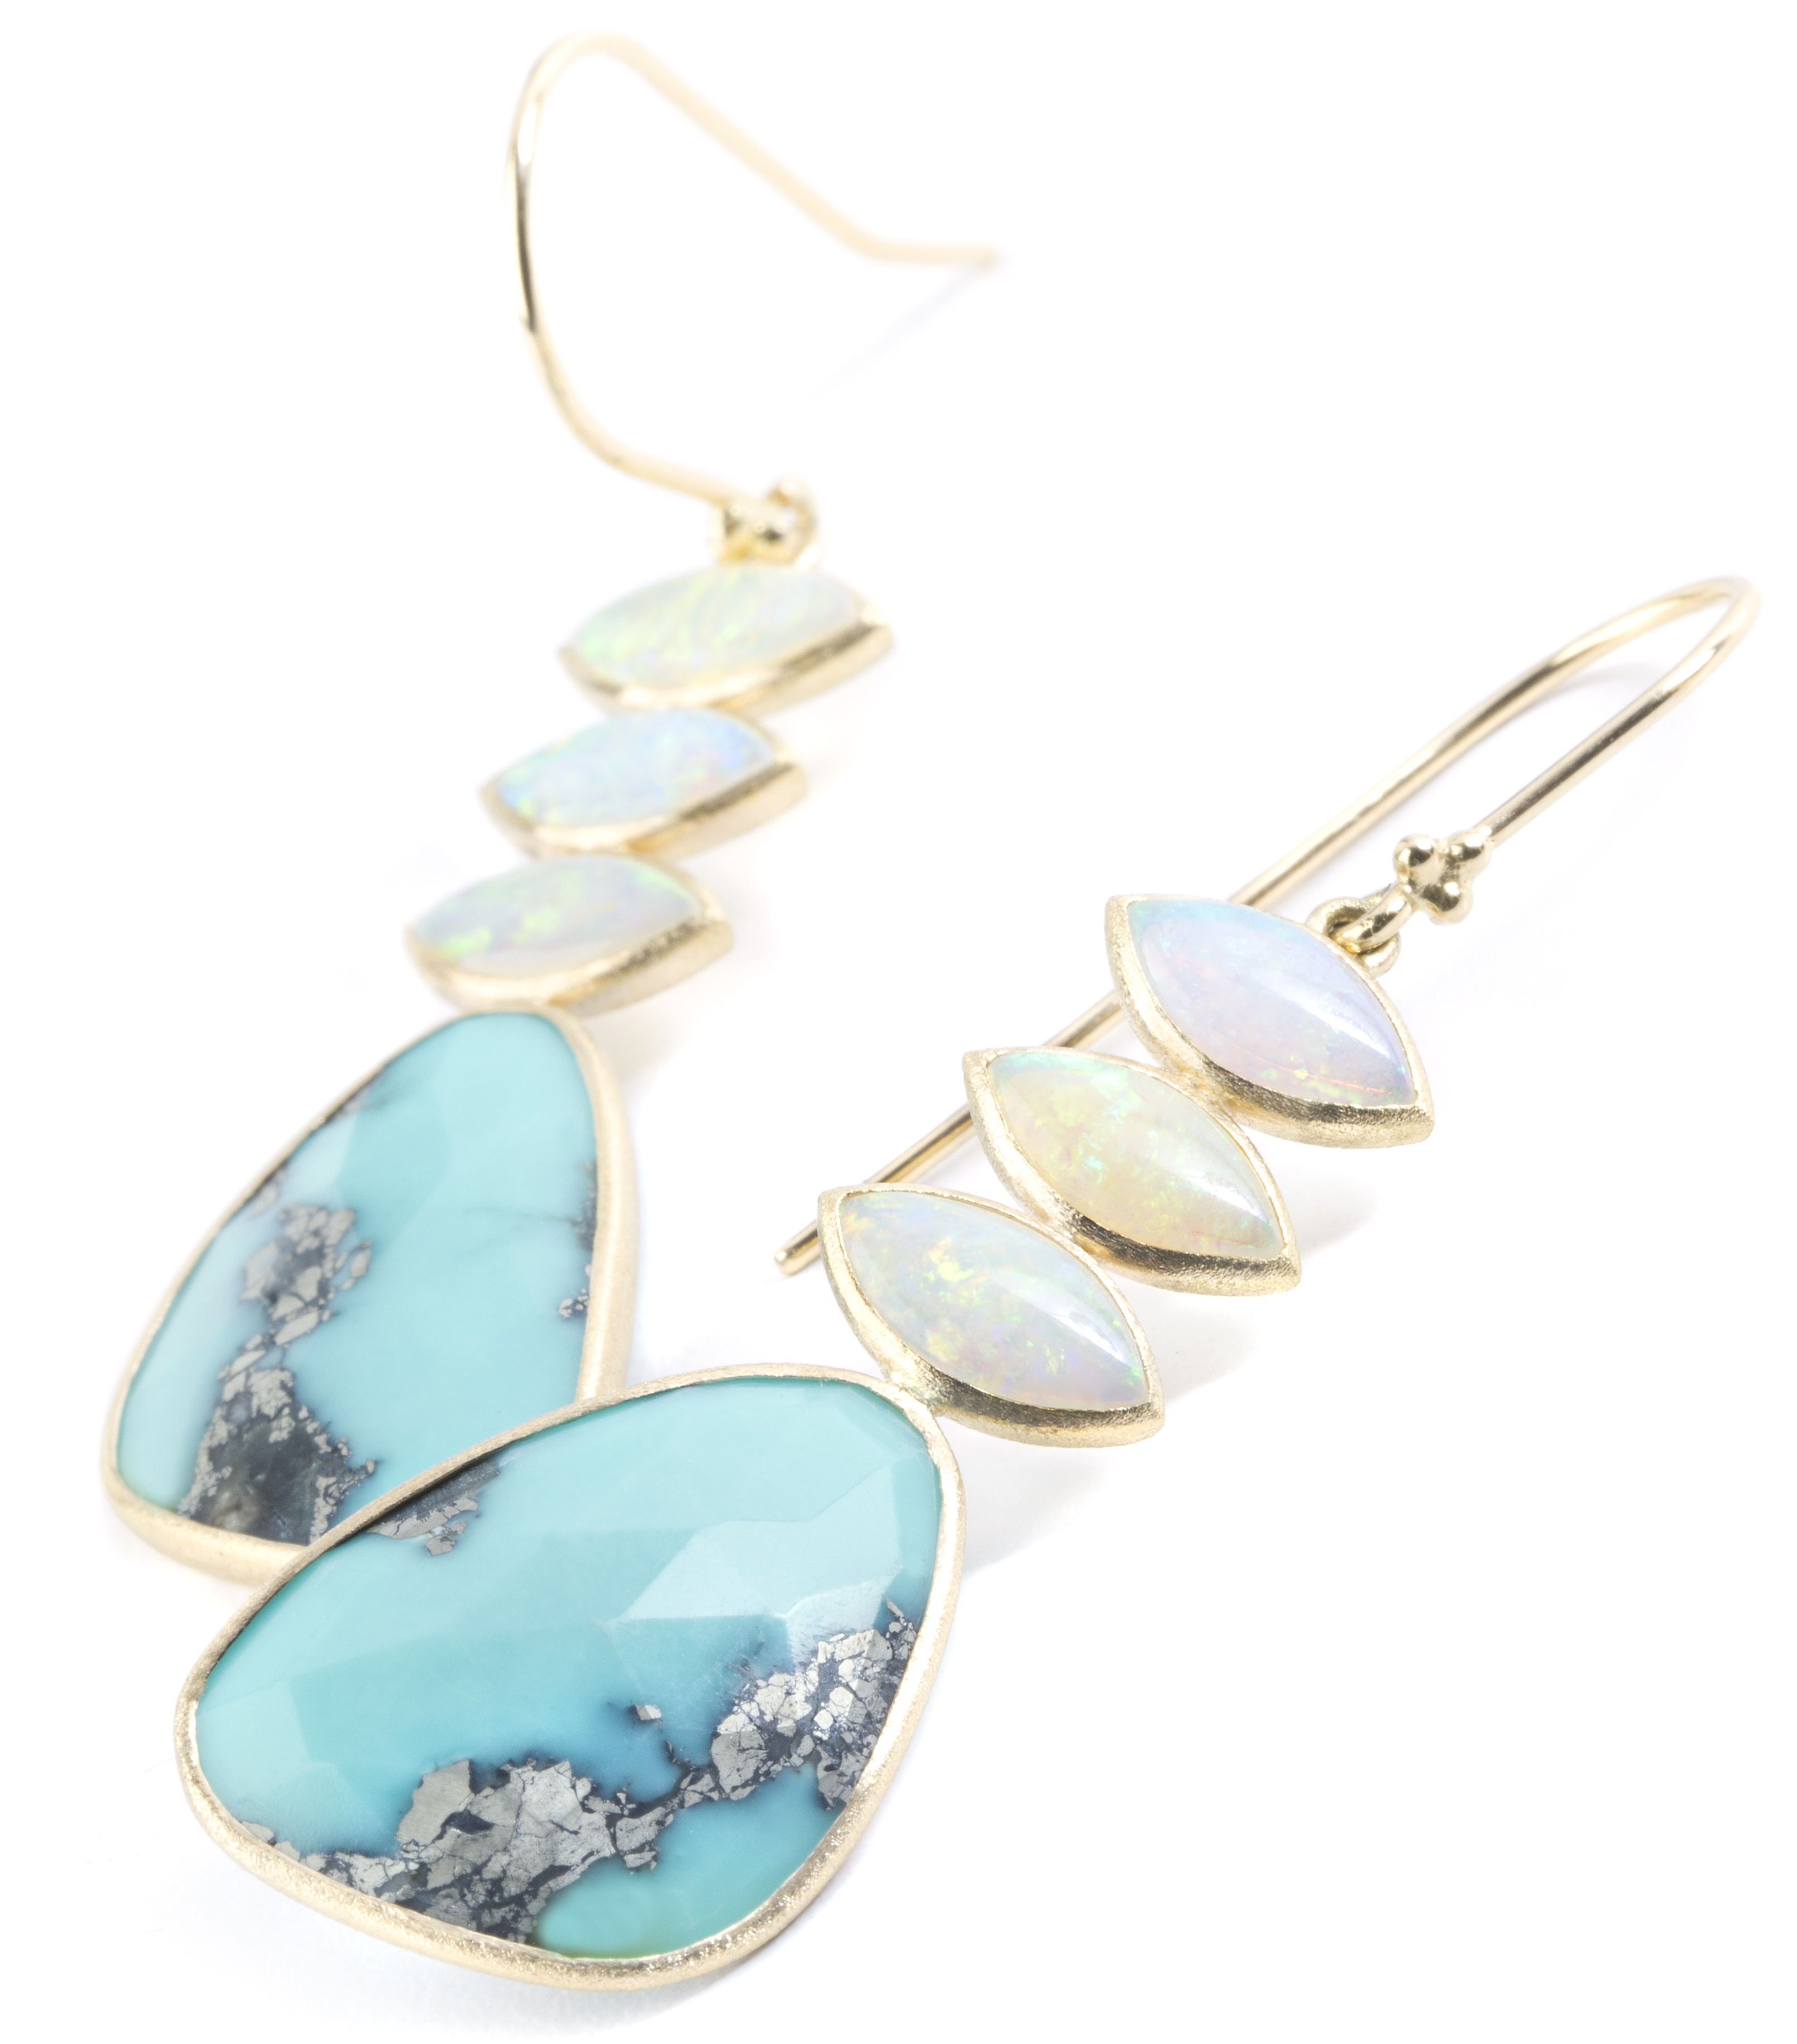 Nina Nguyen Medley opal and turquoise earrings #BrittsPick | JCK On Your Market